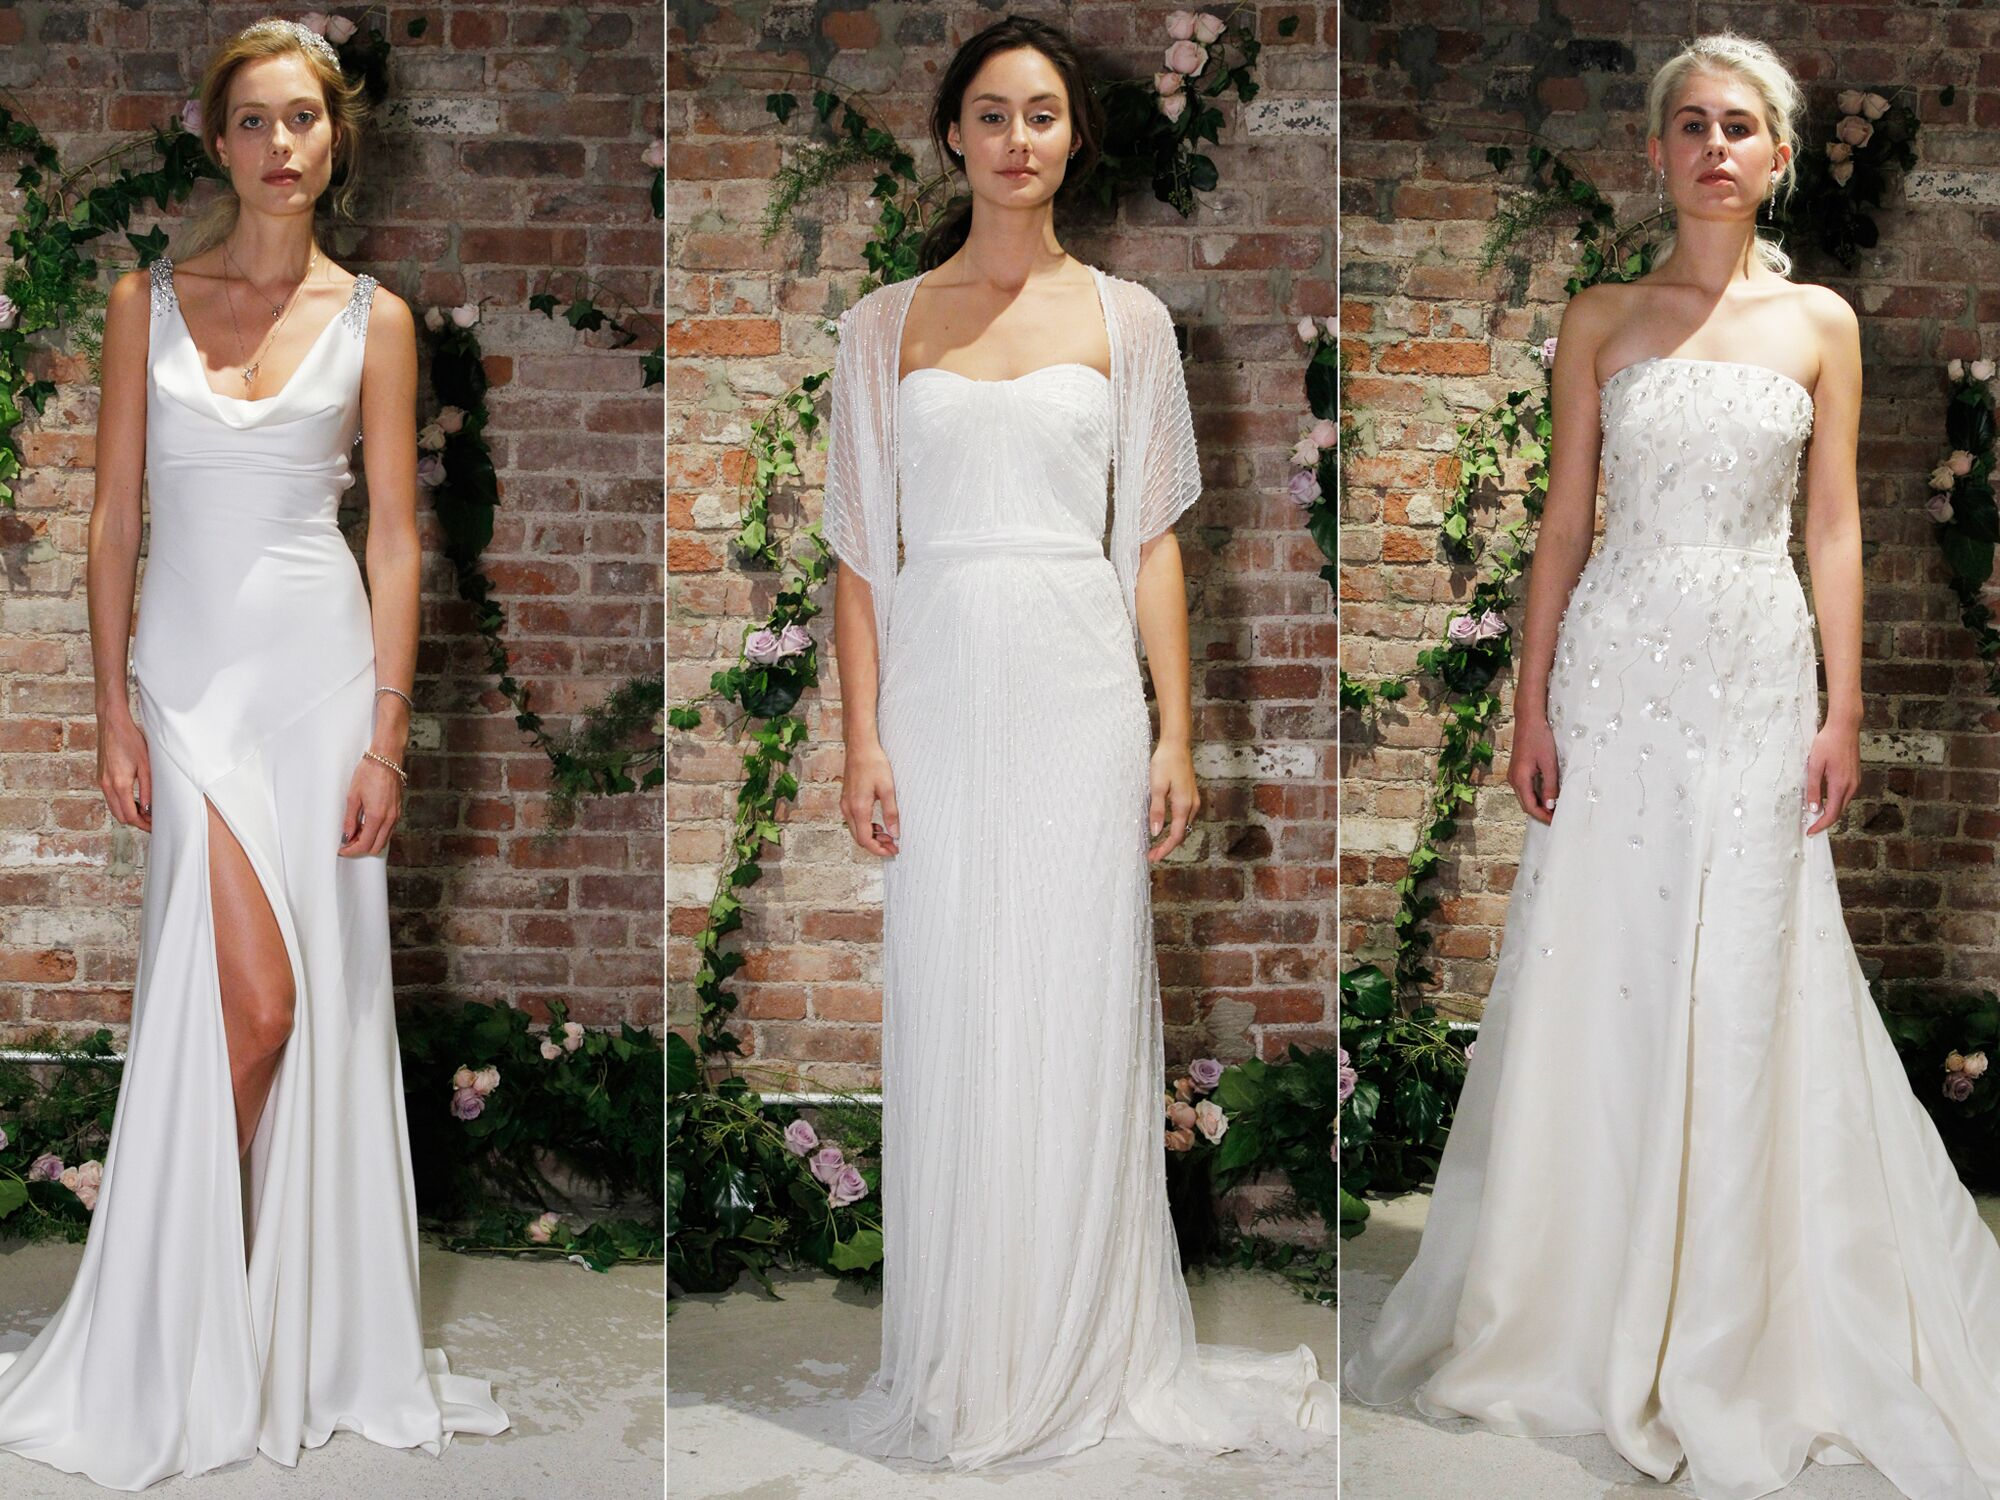 Wedding Gowns 2016: Jenny Packham Fall 2016 Collection: Wedding Dress Photos